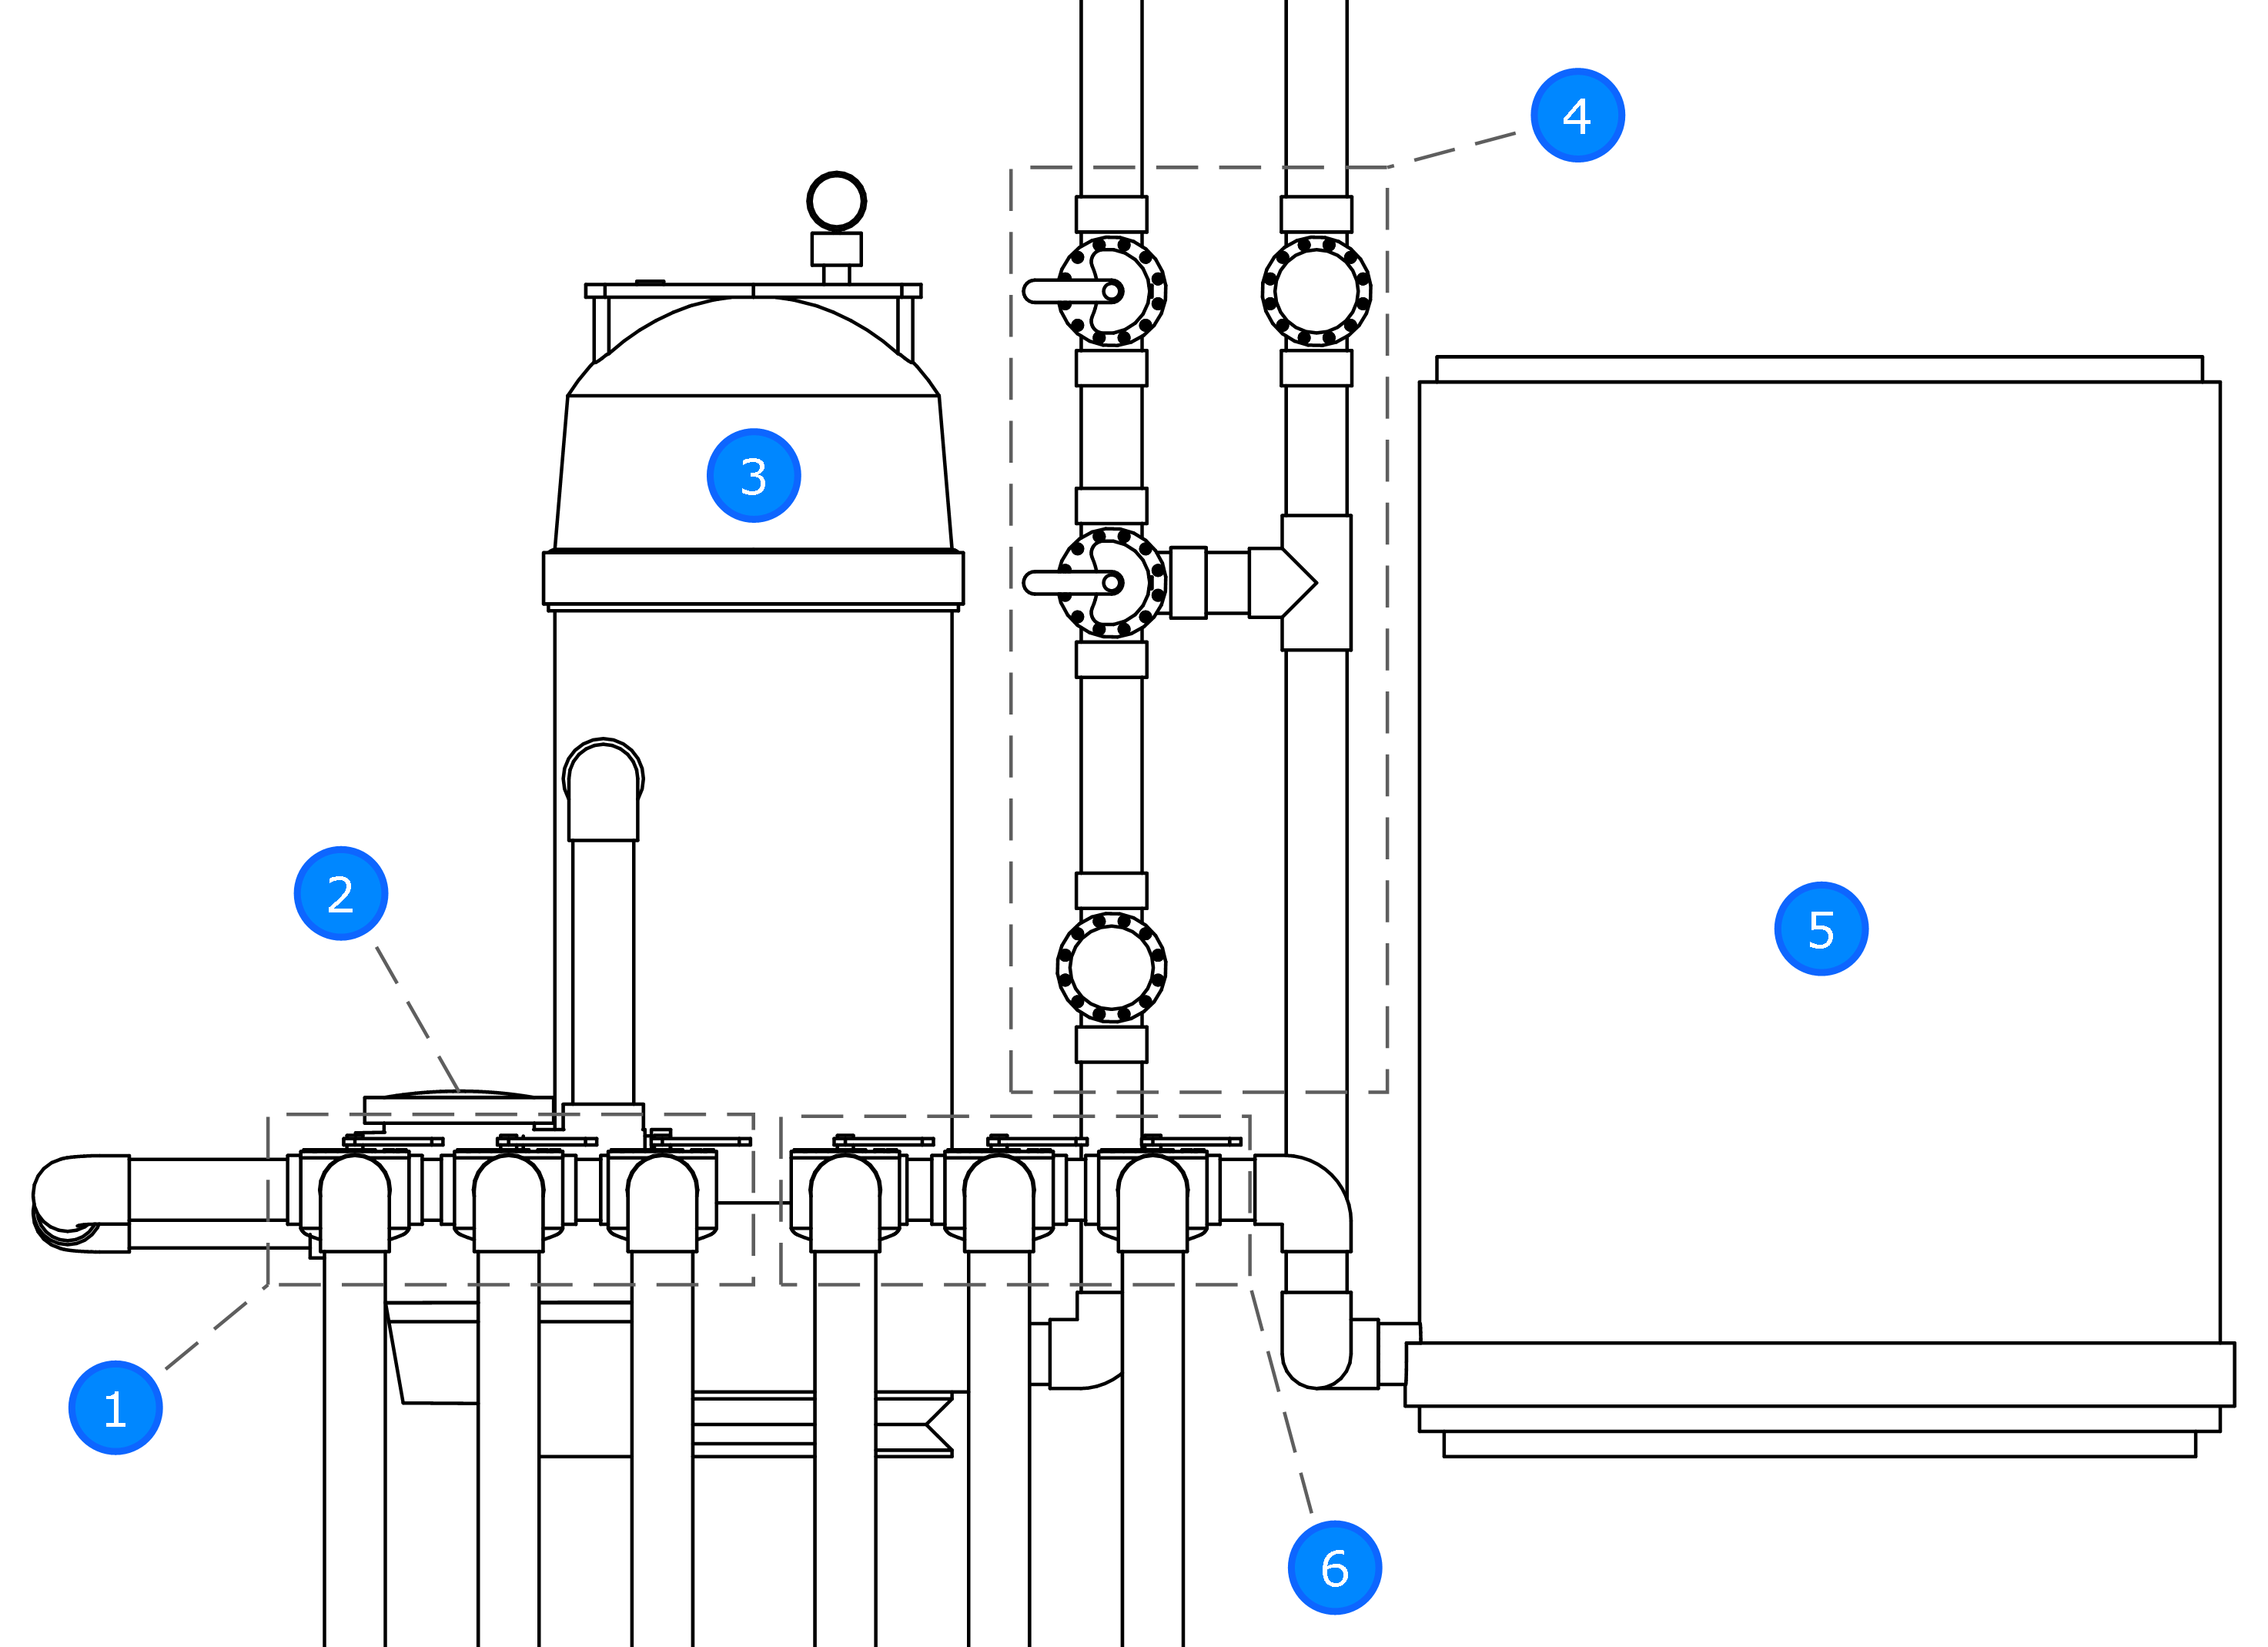 Solar Pool Heat Plumbing Schematic